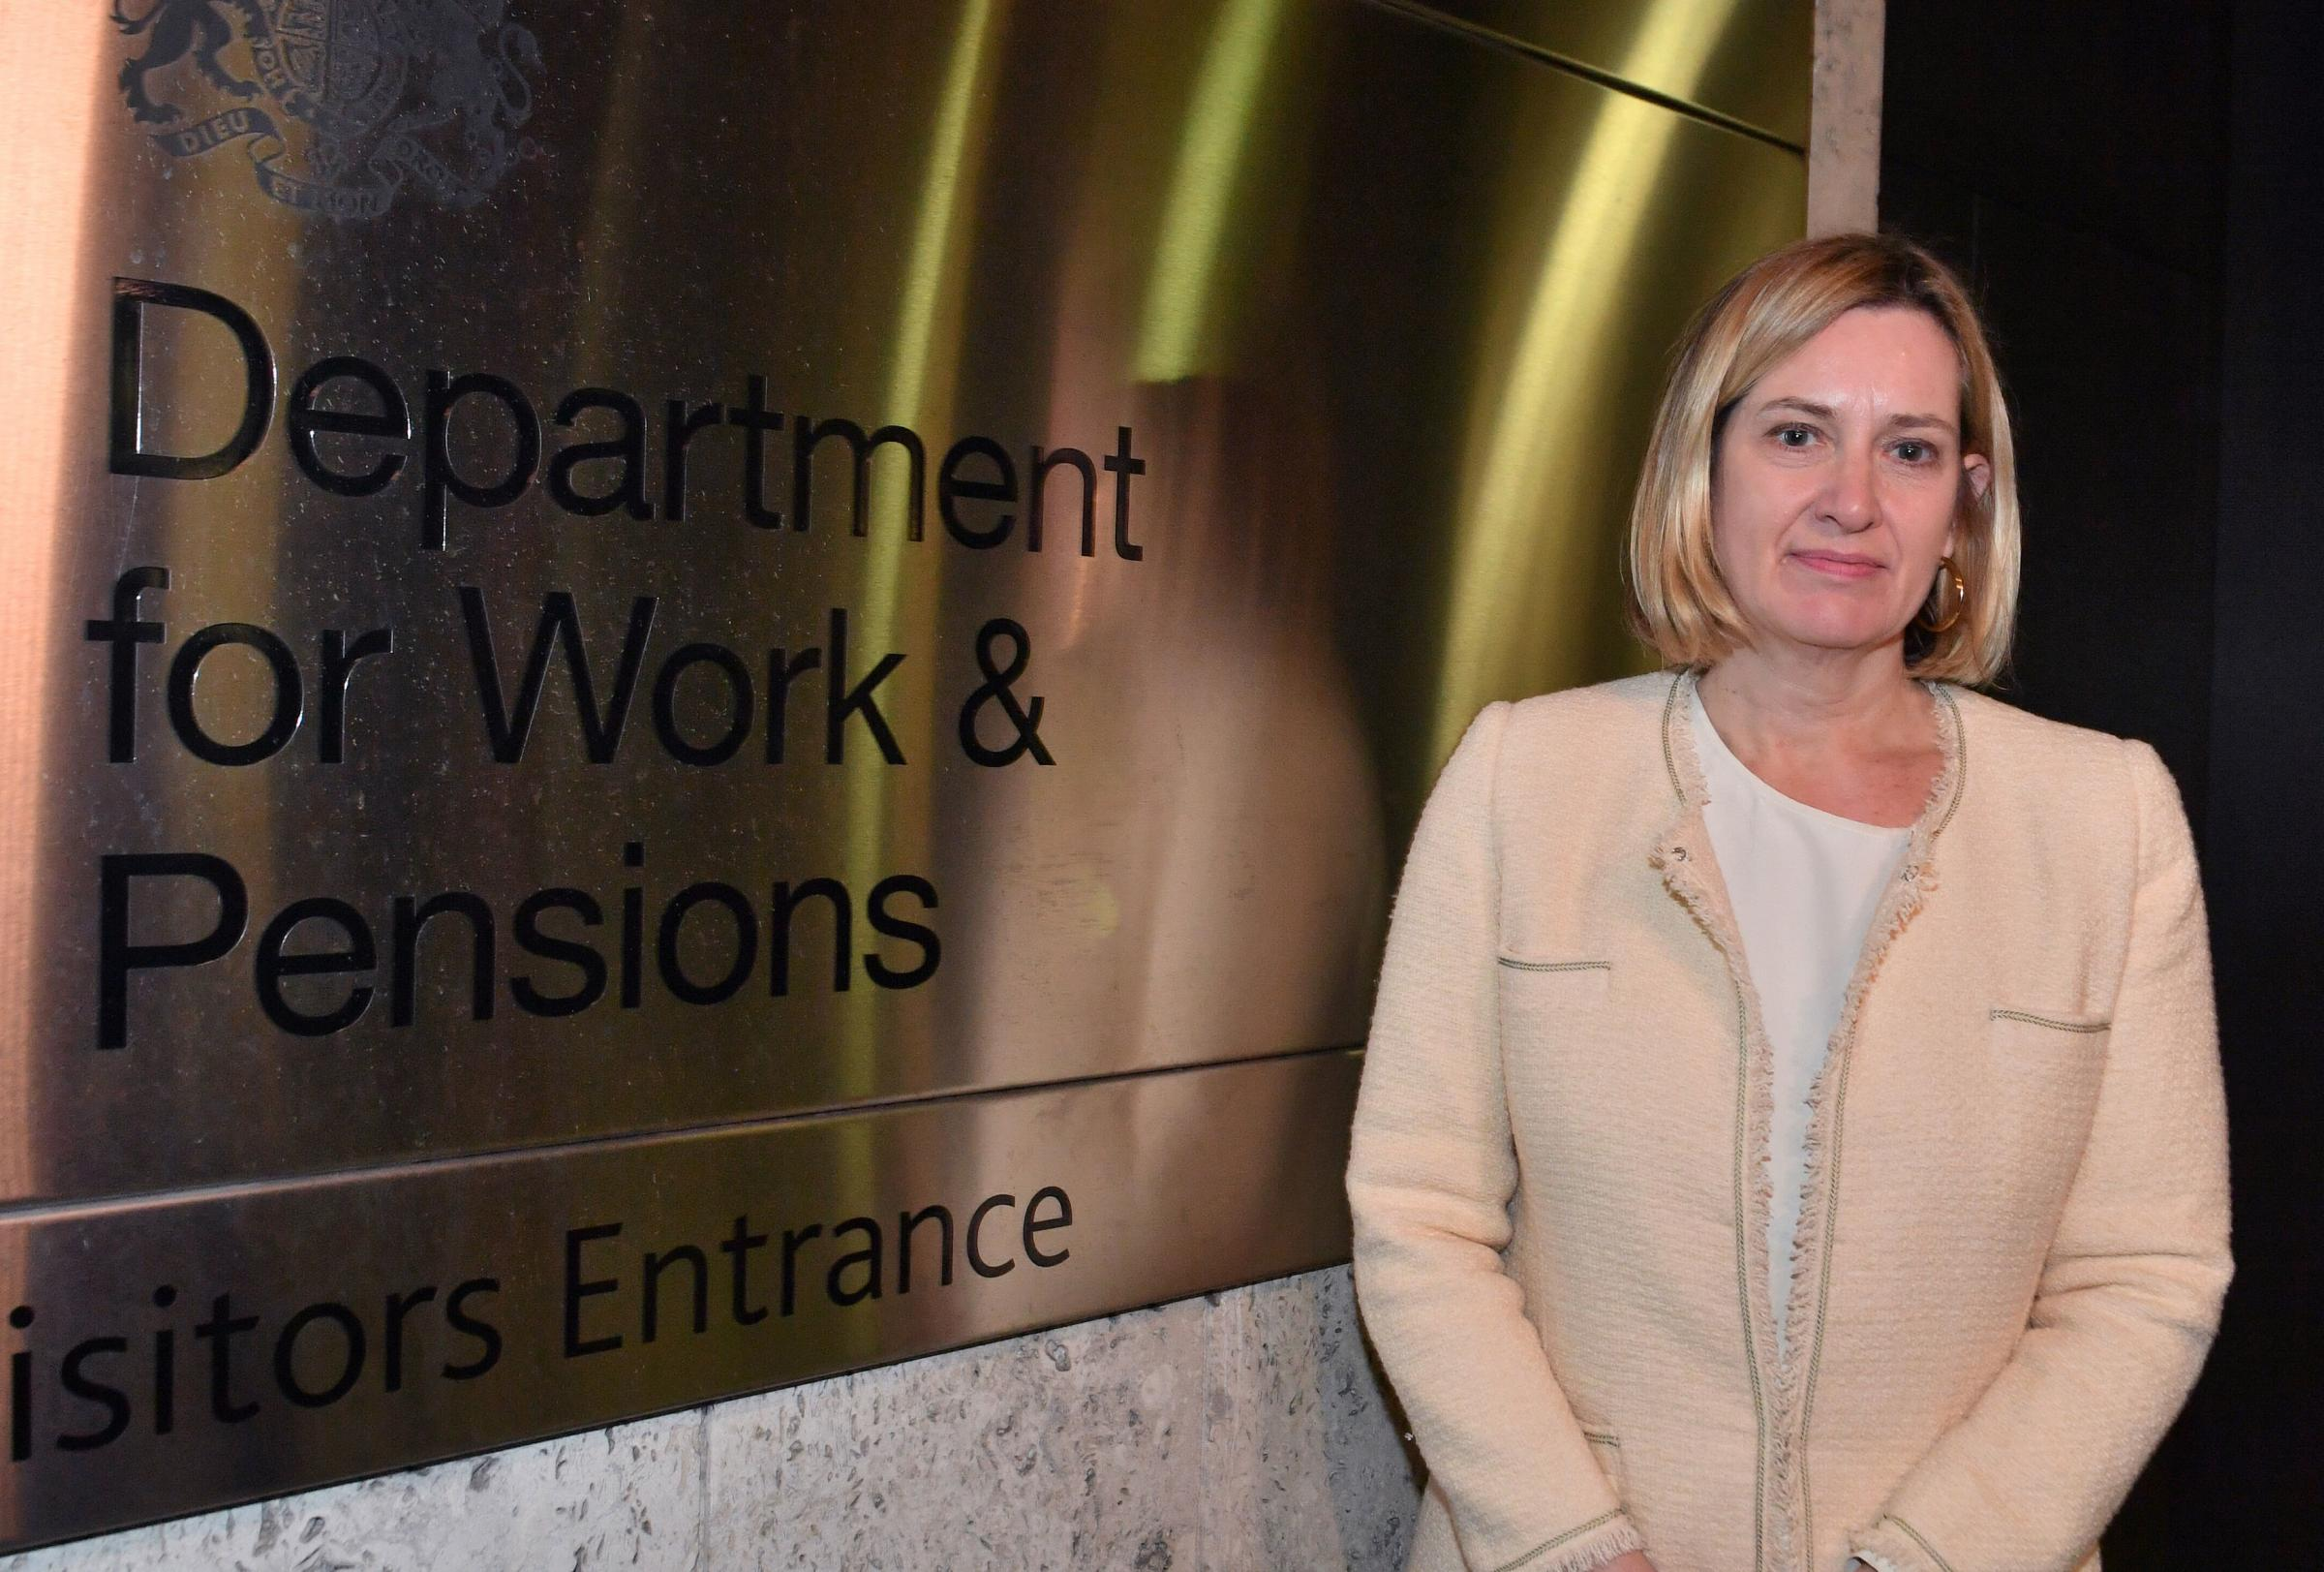 Amber Rudd began as the Work and Pensions Secretary in November